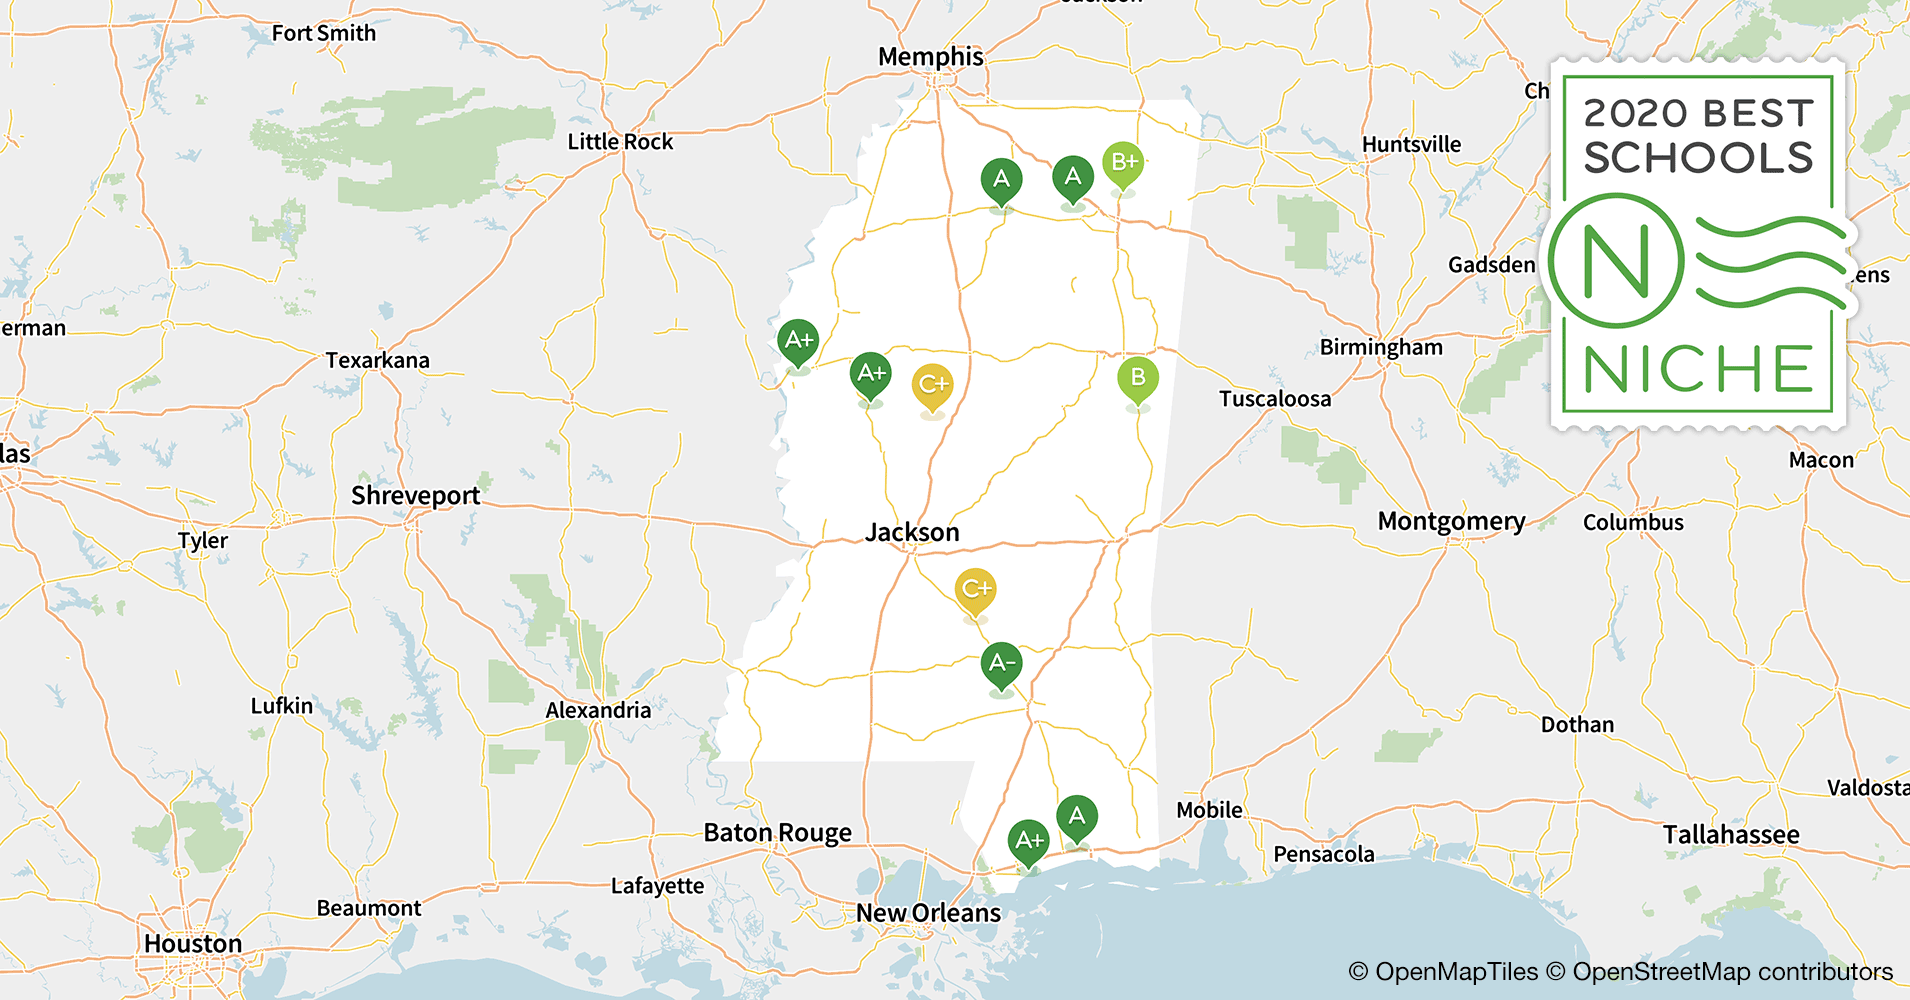 2020 Best Private High Schools in Mississippi - Niche